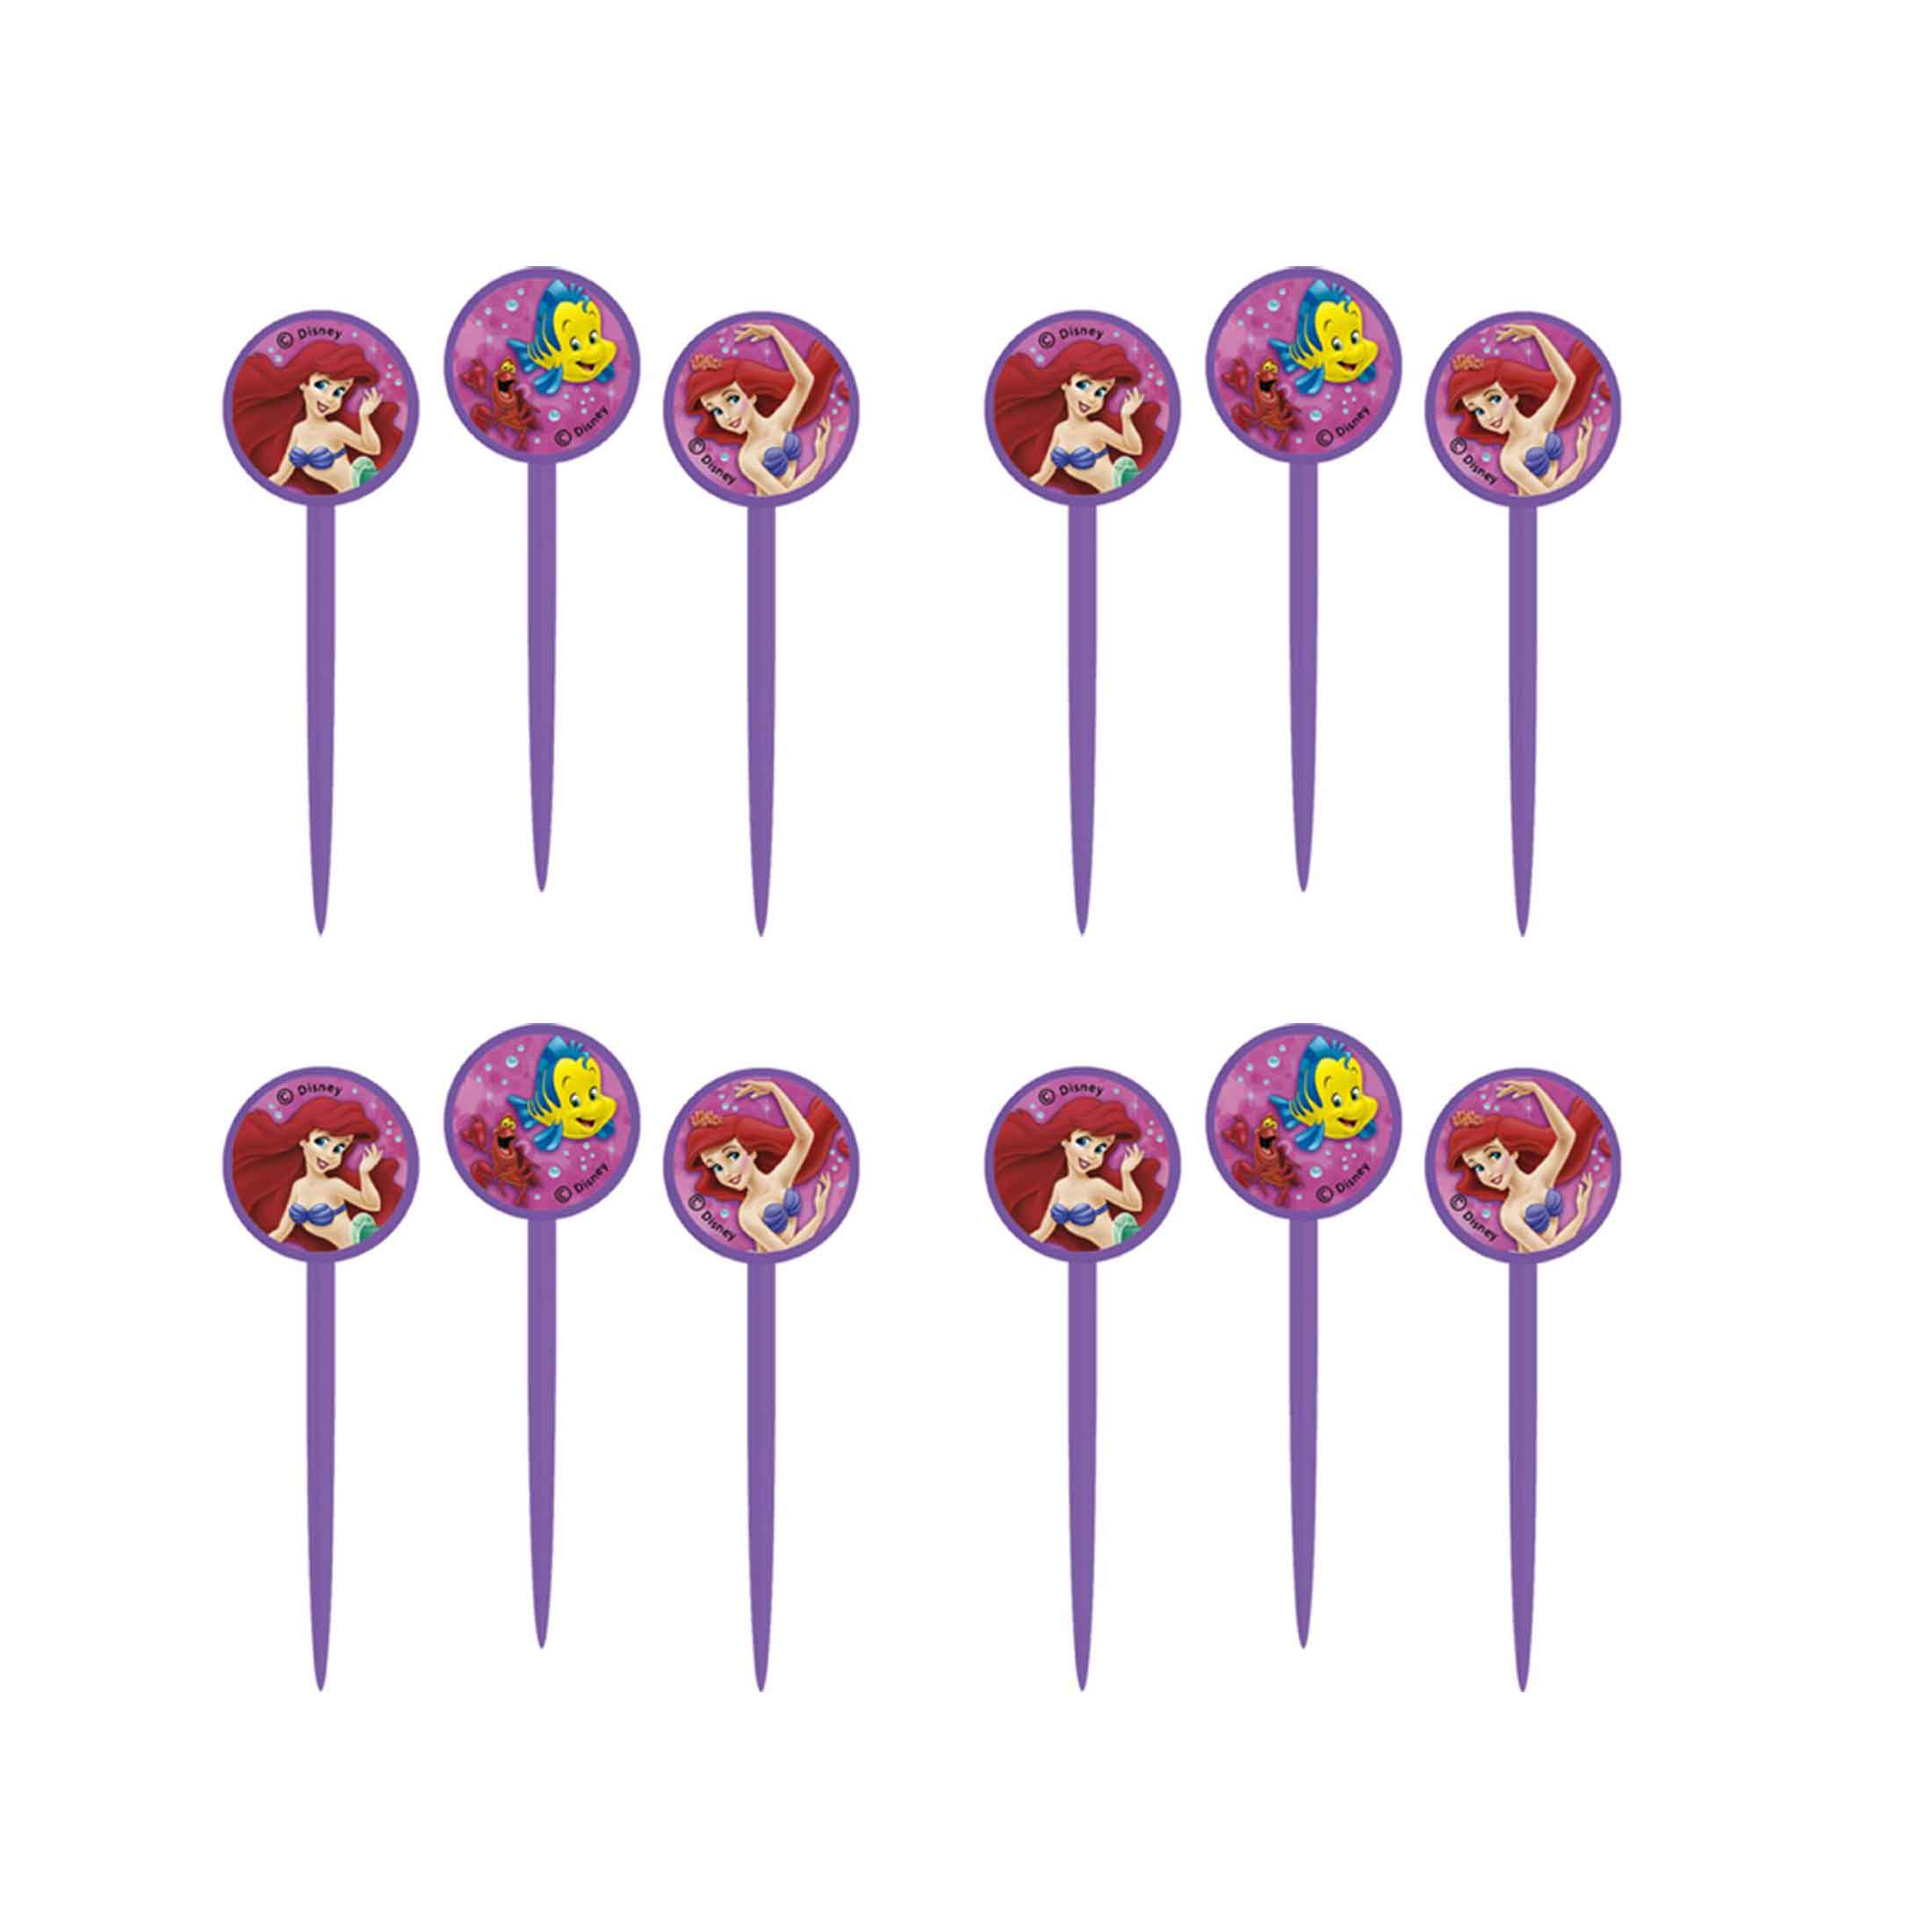 Ariel The Little Mermaid Cupcake Toppers Picks 12ct Walmart Com